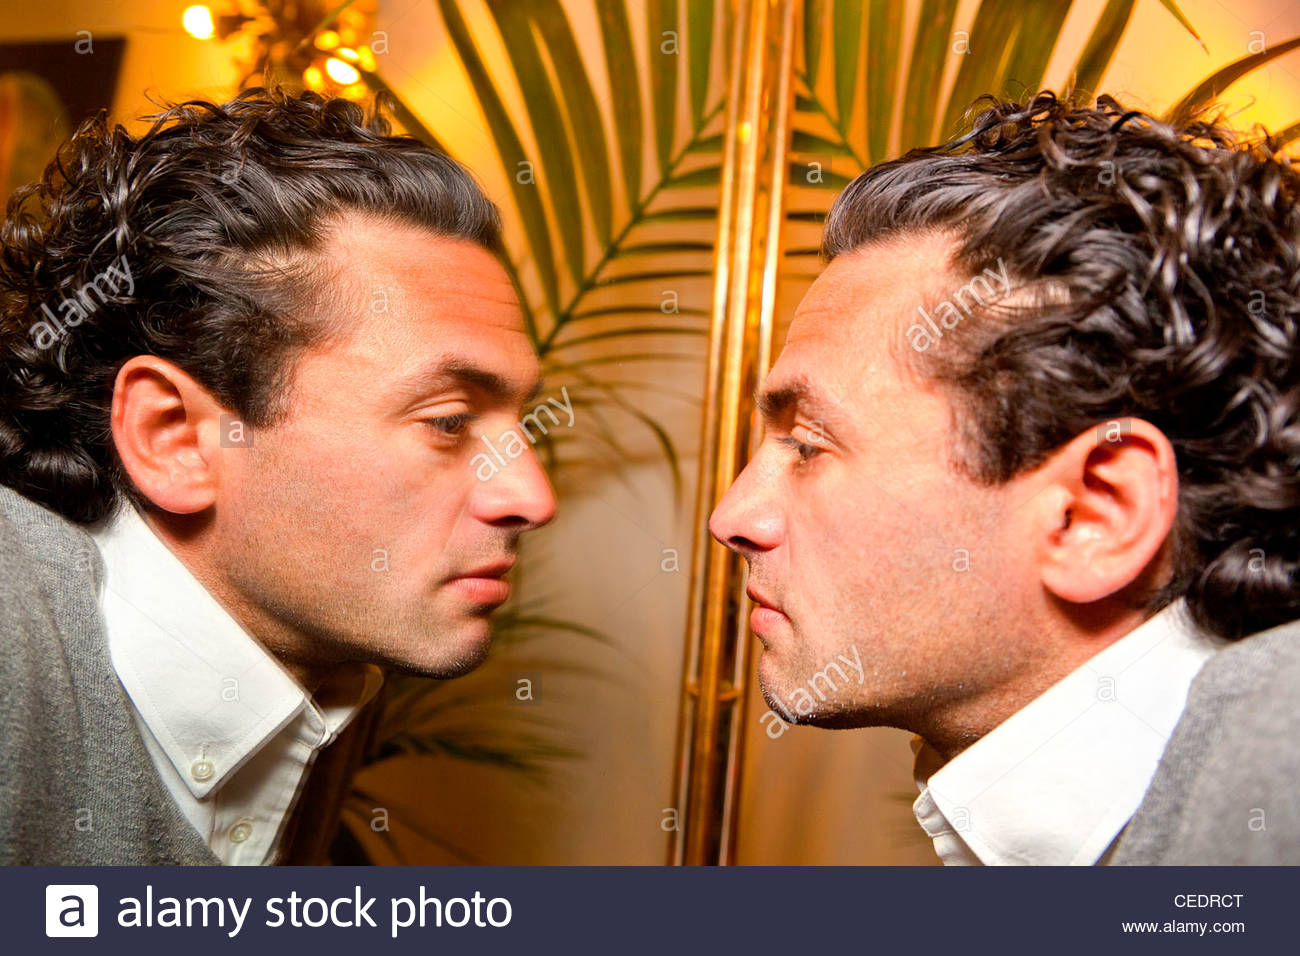 Man looking in the mirror Stock Photo